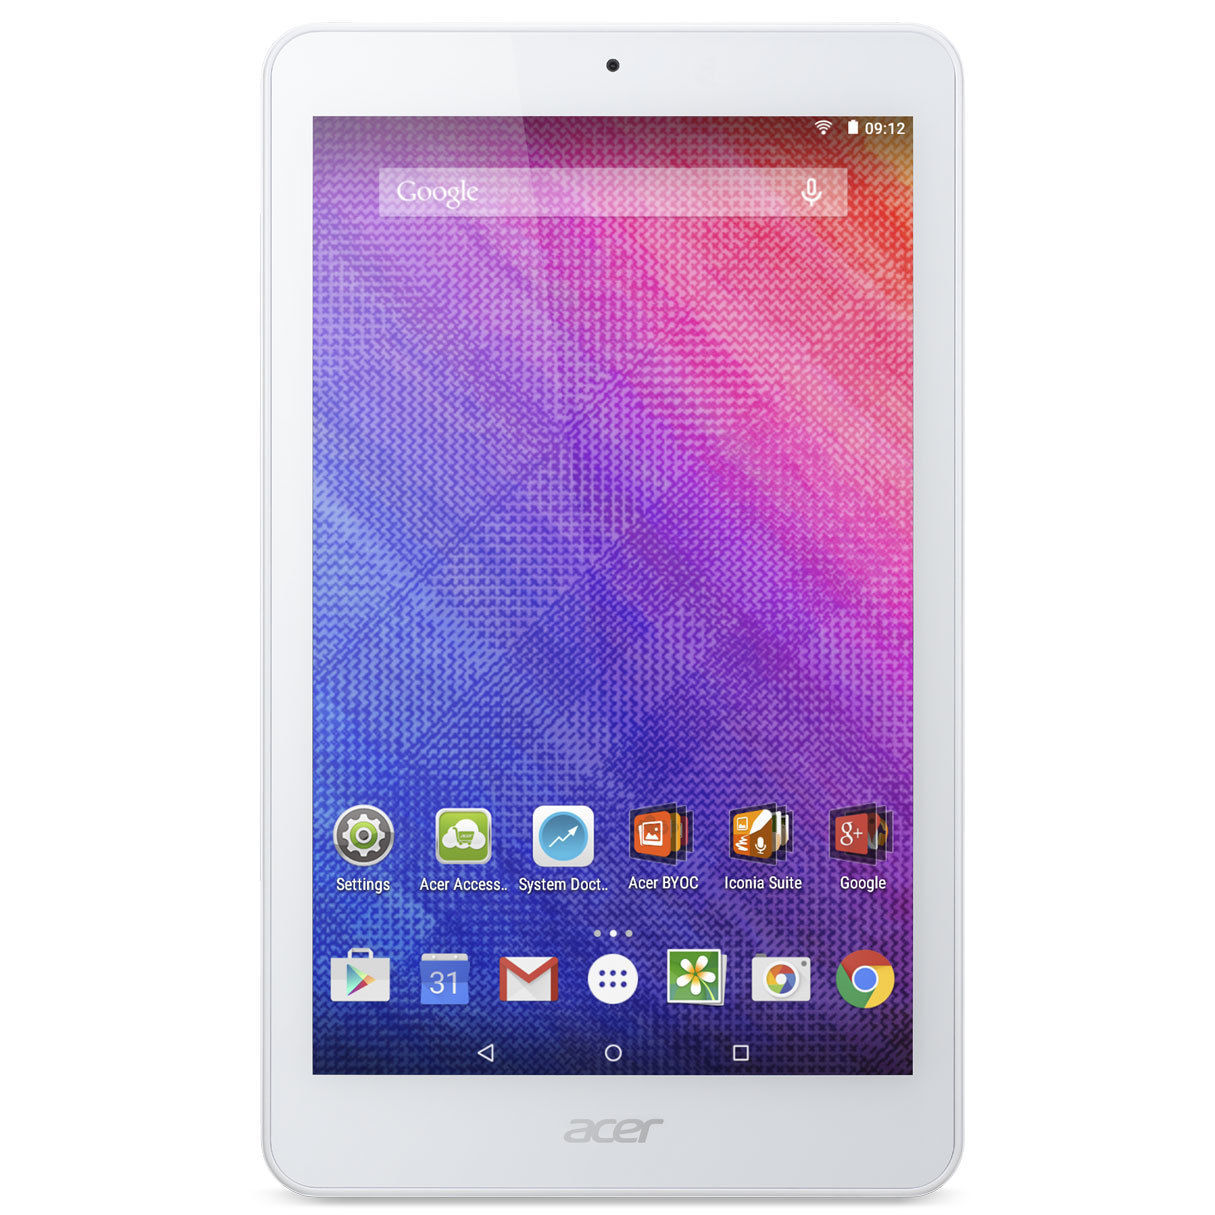 Tablette Internet - Intel Atom Z3735G 1 Go eMMC 16 Go 8'' LED IPS Tactile Wi-Fi N/Bluetooth Webcam Android 5.0